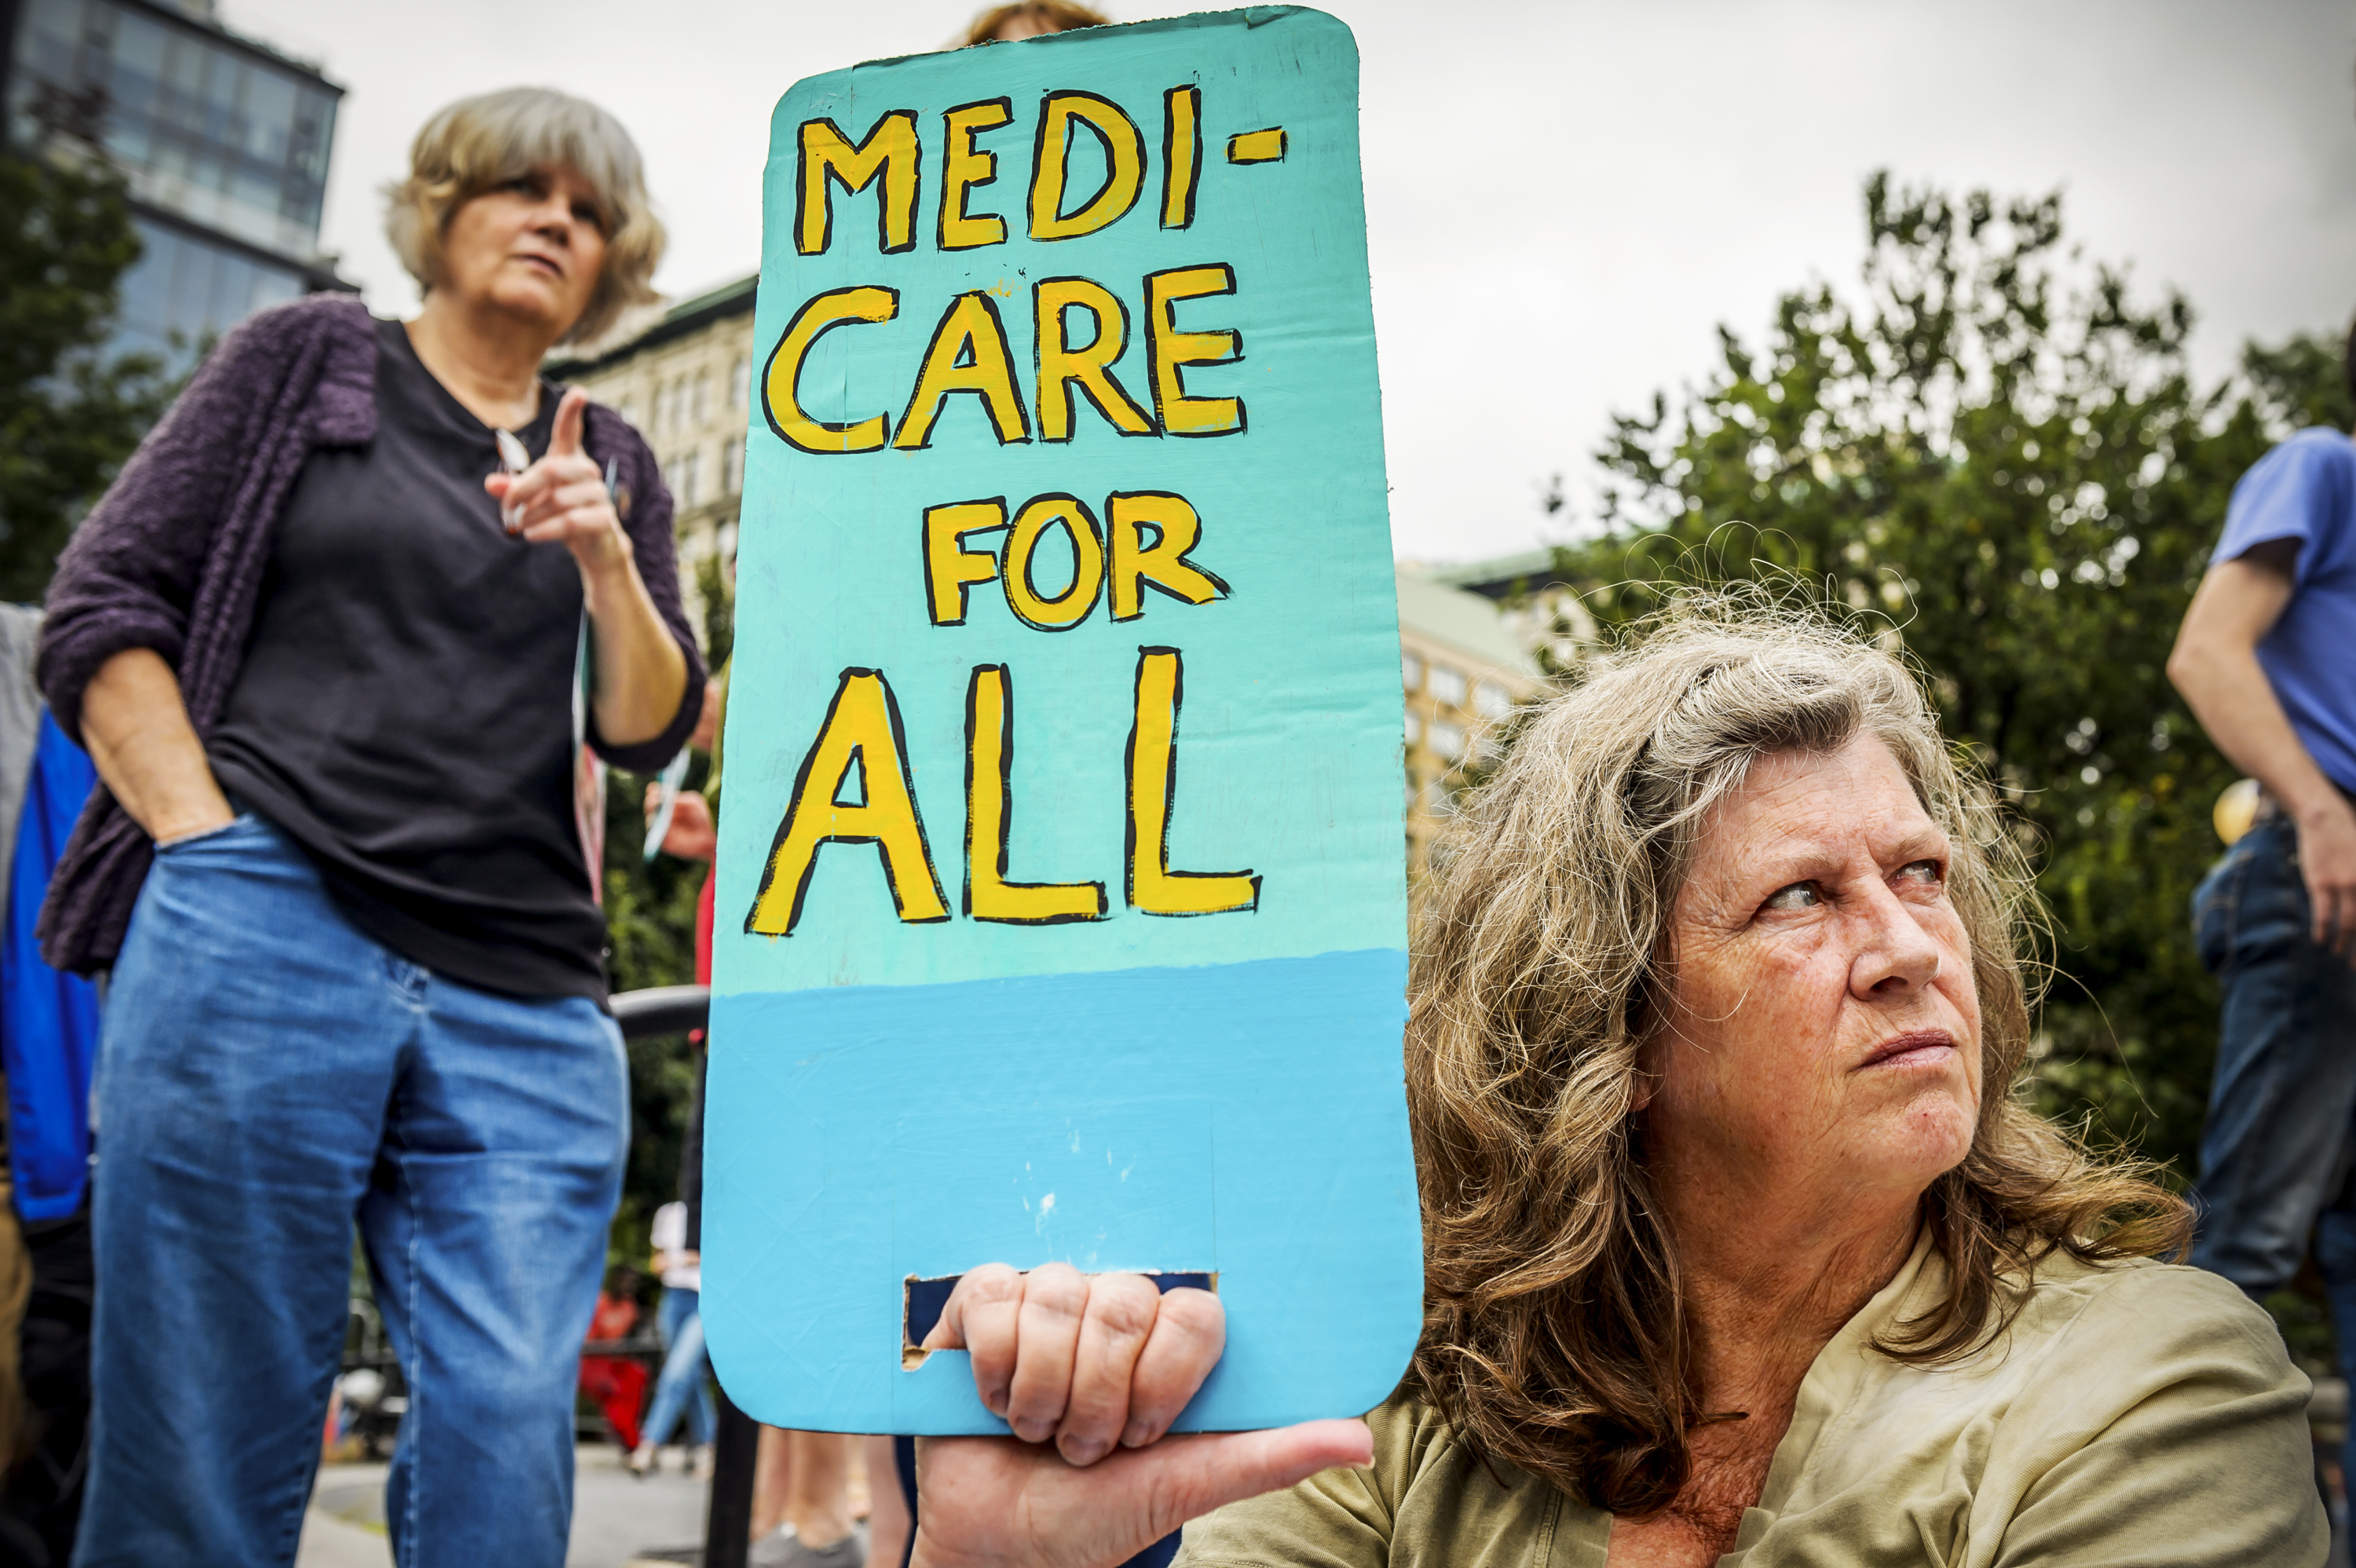 Hundreds of New Yorkers joined a grassroots alliance of health care advocates in a rally on the steps of Union Square to demand Medicare for All.